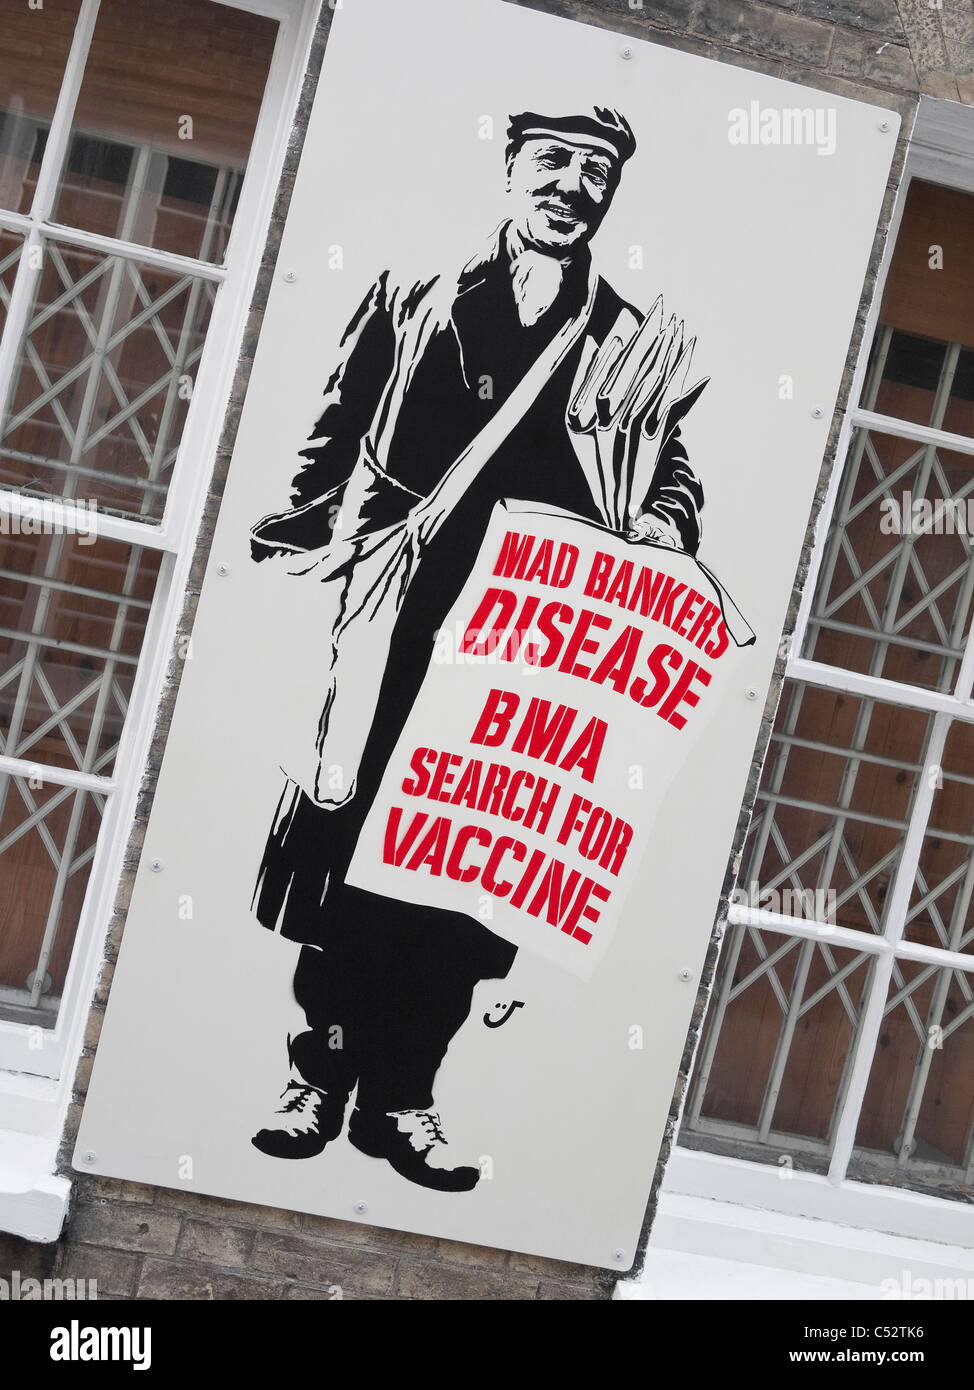 mad bankers disease poster - Stock Image